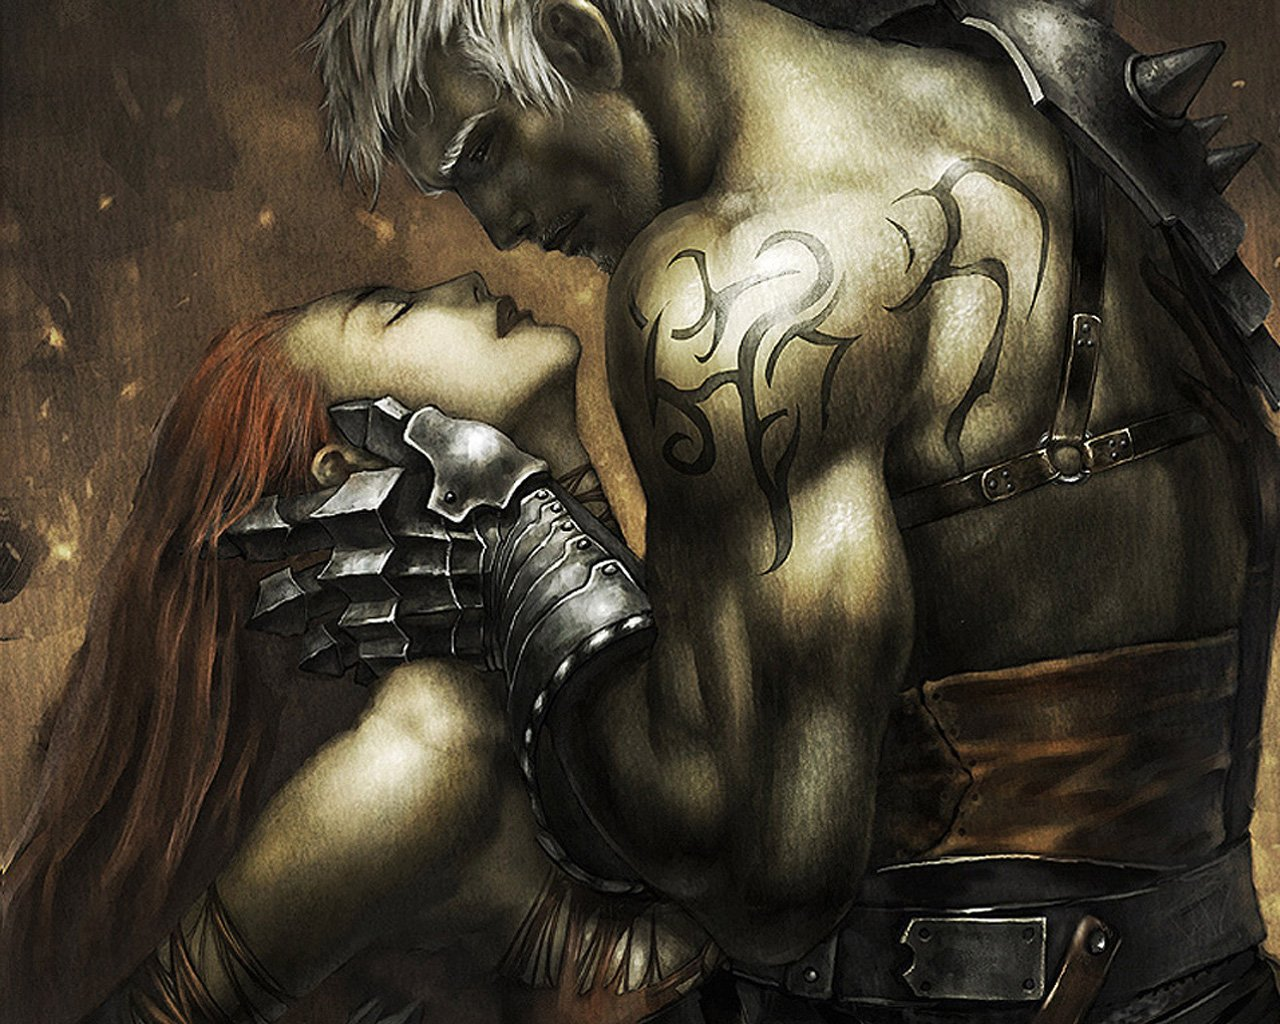 Almost certainly NSFW] Male warriors in fantasy art that are heavily 1280x1024